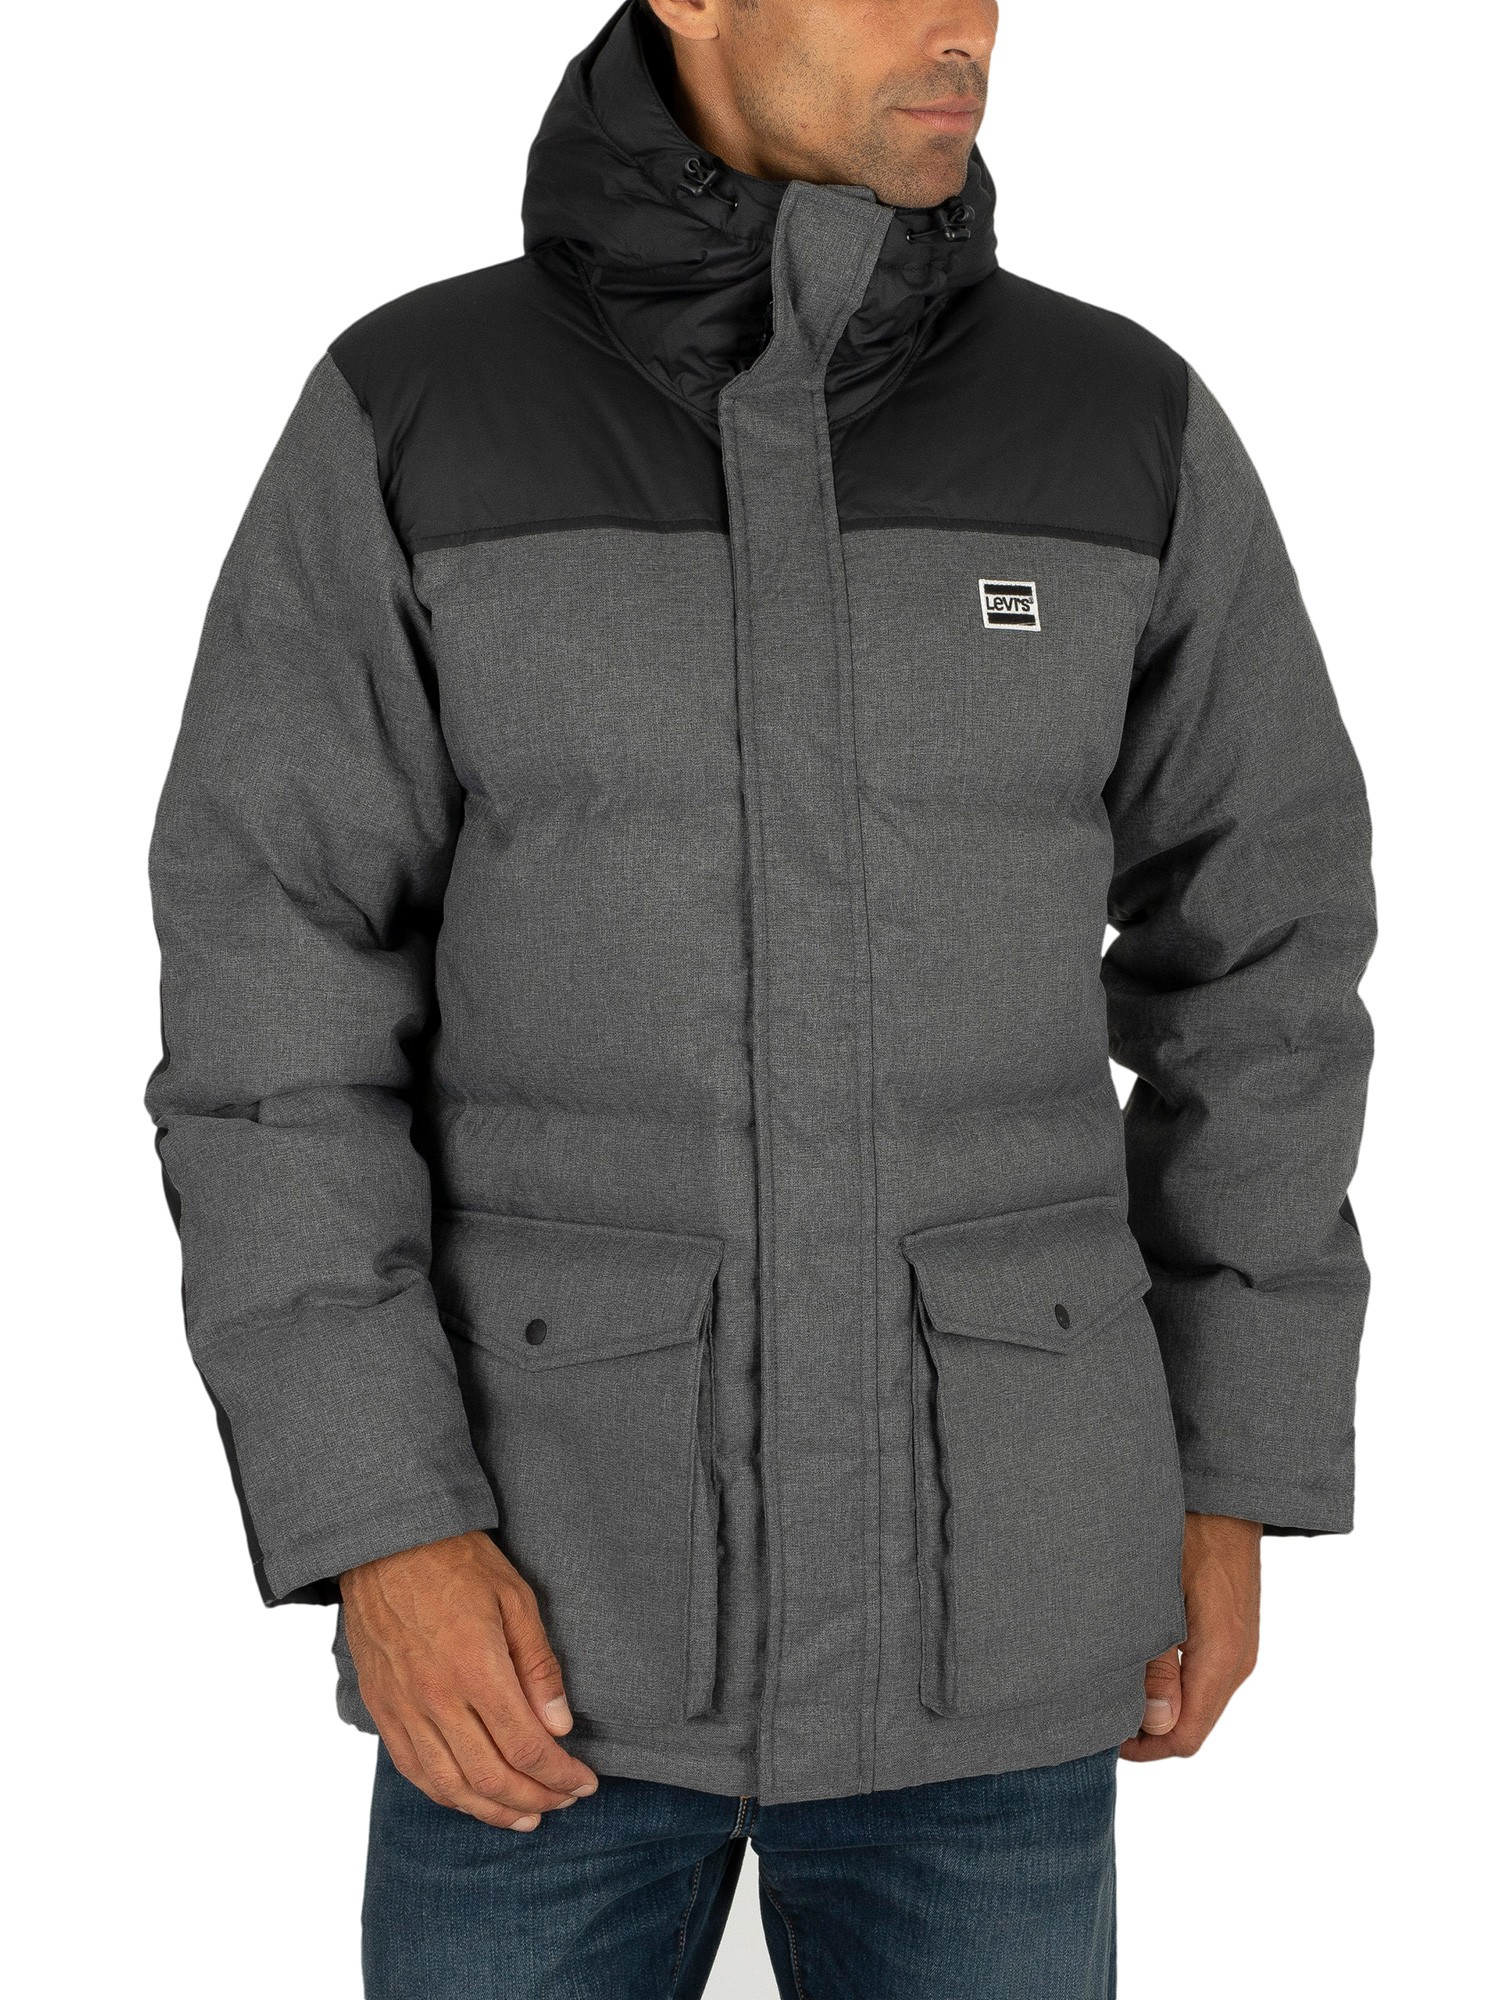 Levi's Down Puffer Parka Jacket - Dark Heather Grey